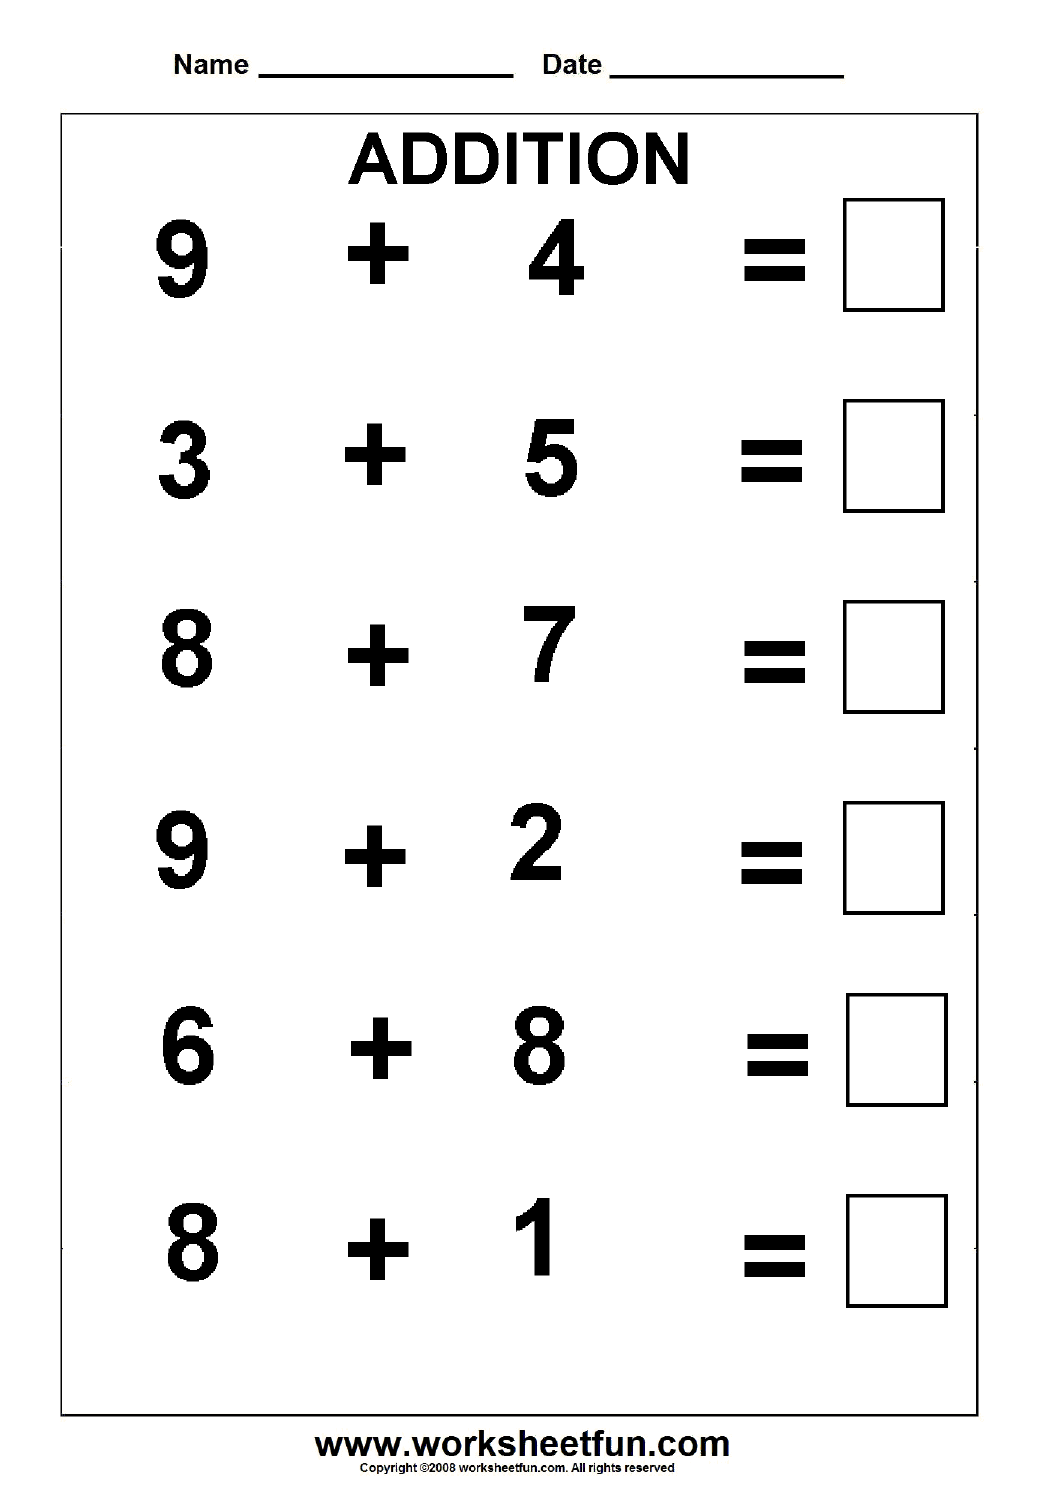 Beginner Addition 5 Worksheets